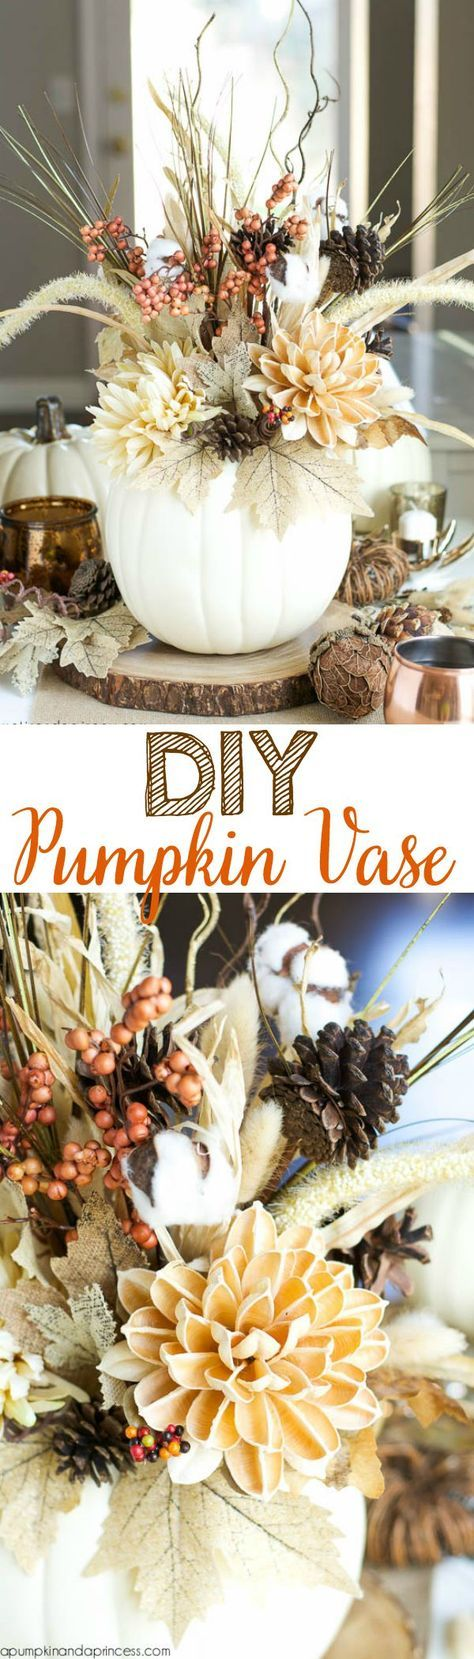 Pumpkin Vase Tutorial - create a beautiful pumpkin vase for fall with this simple step-by-step tutorial!